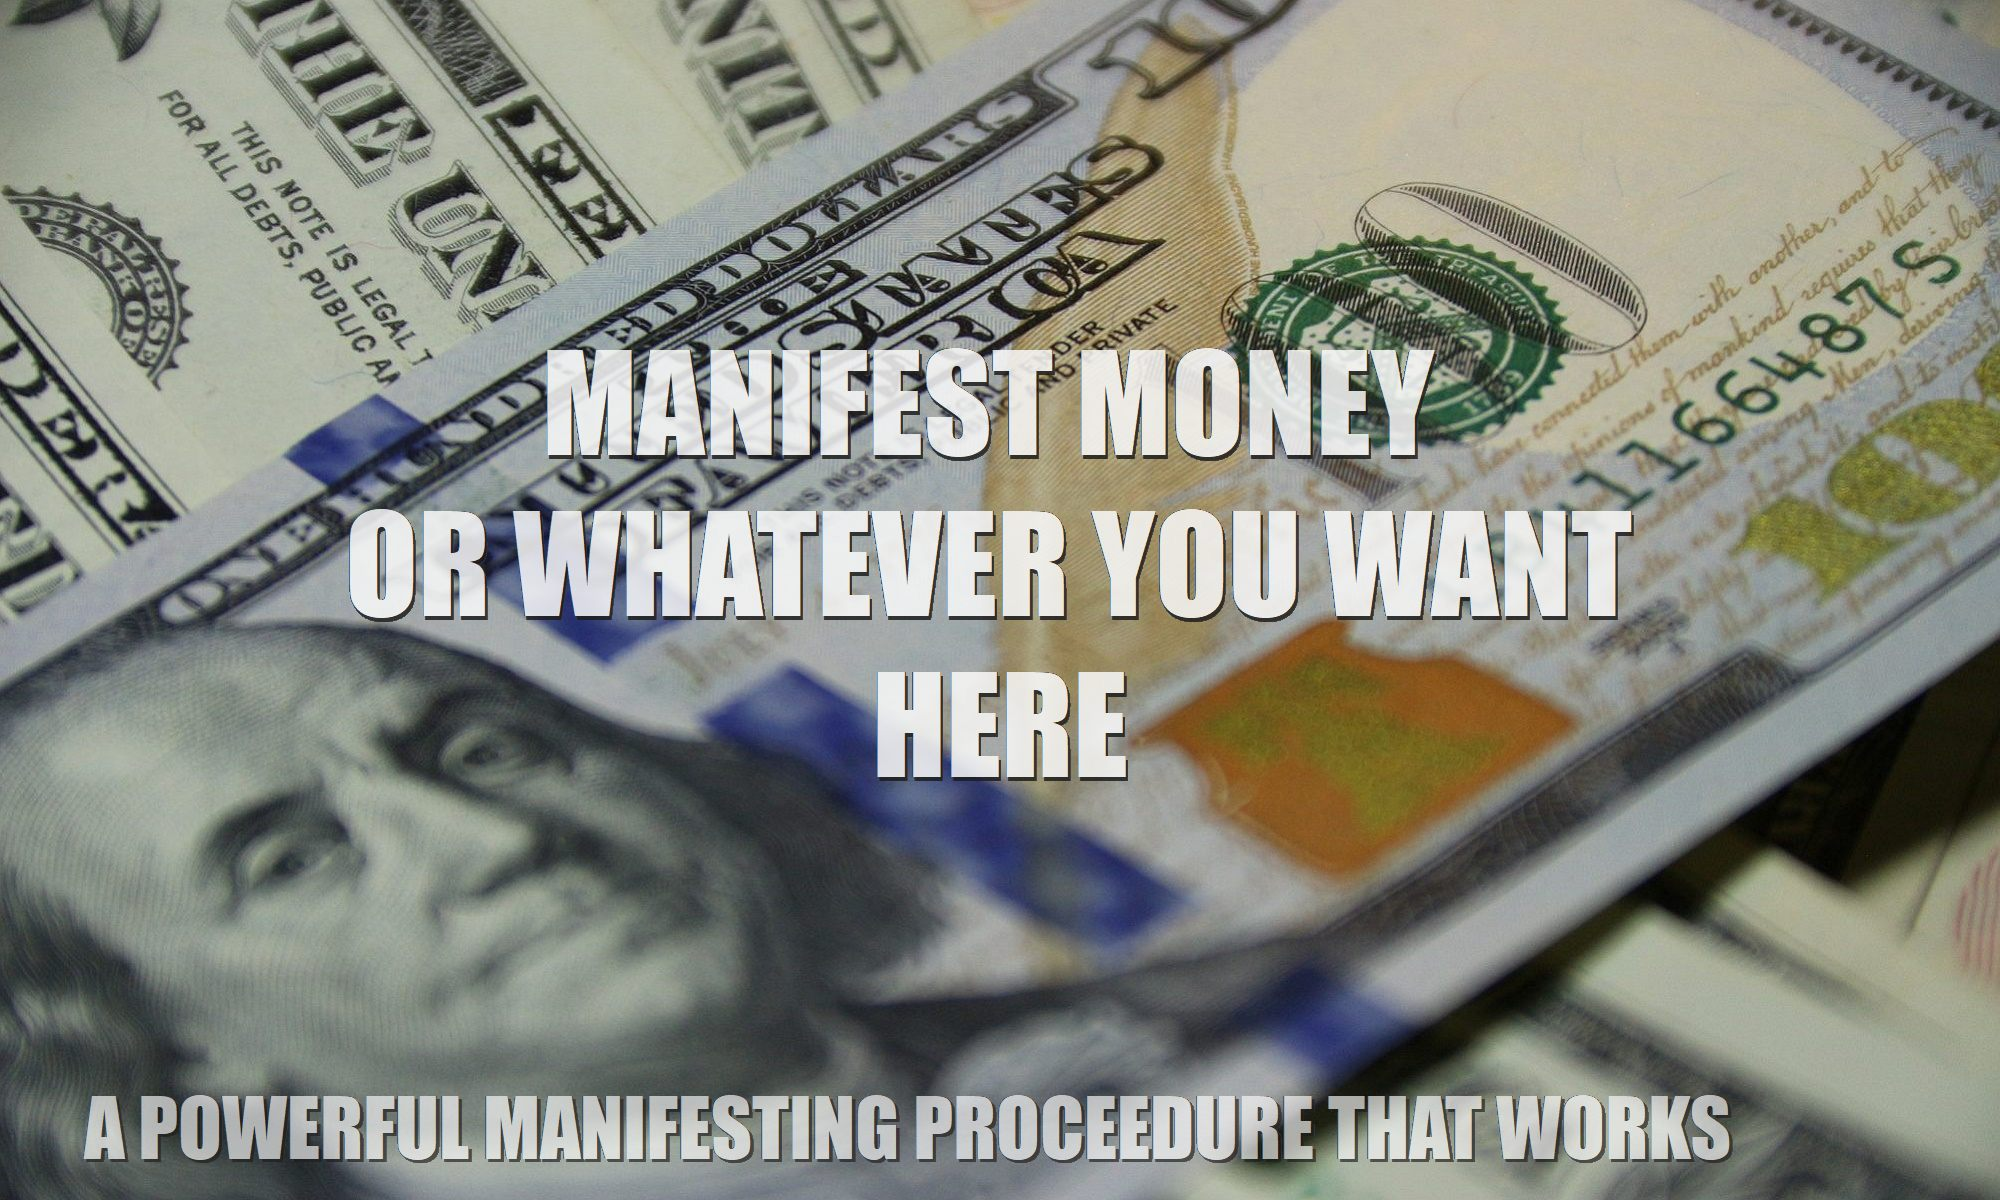 How-to-create-money-with-your-thoughts-cause-manifest-events-to-happen-0033